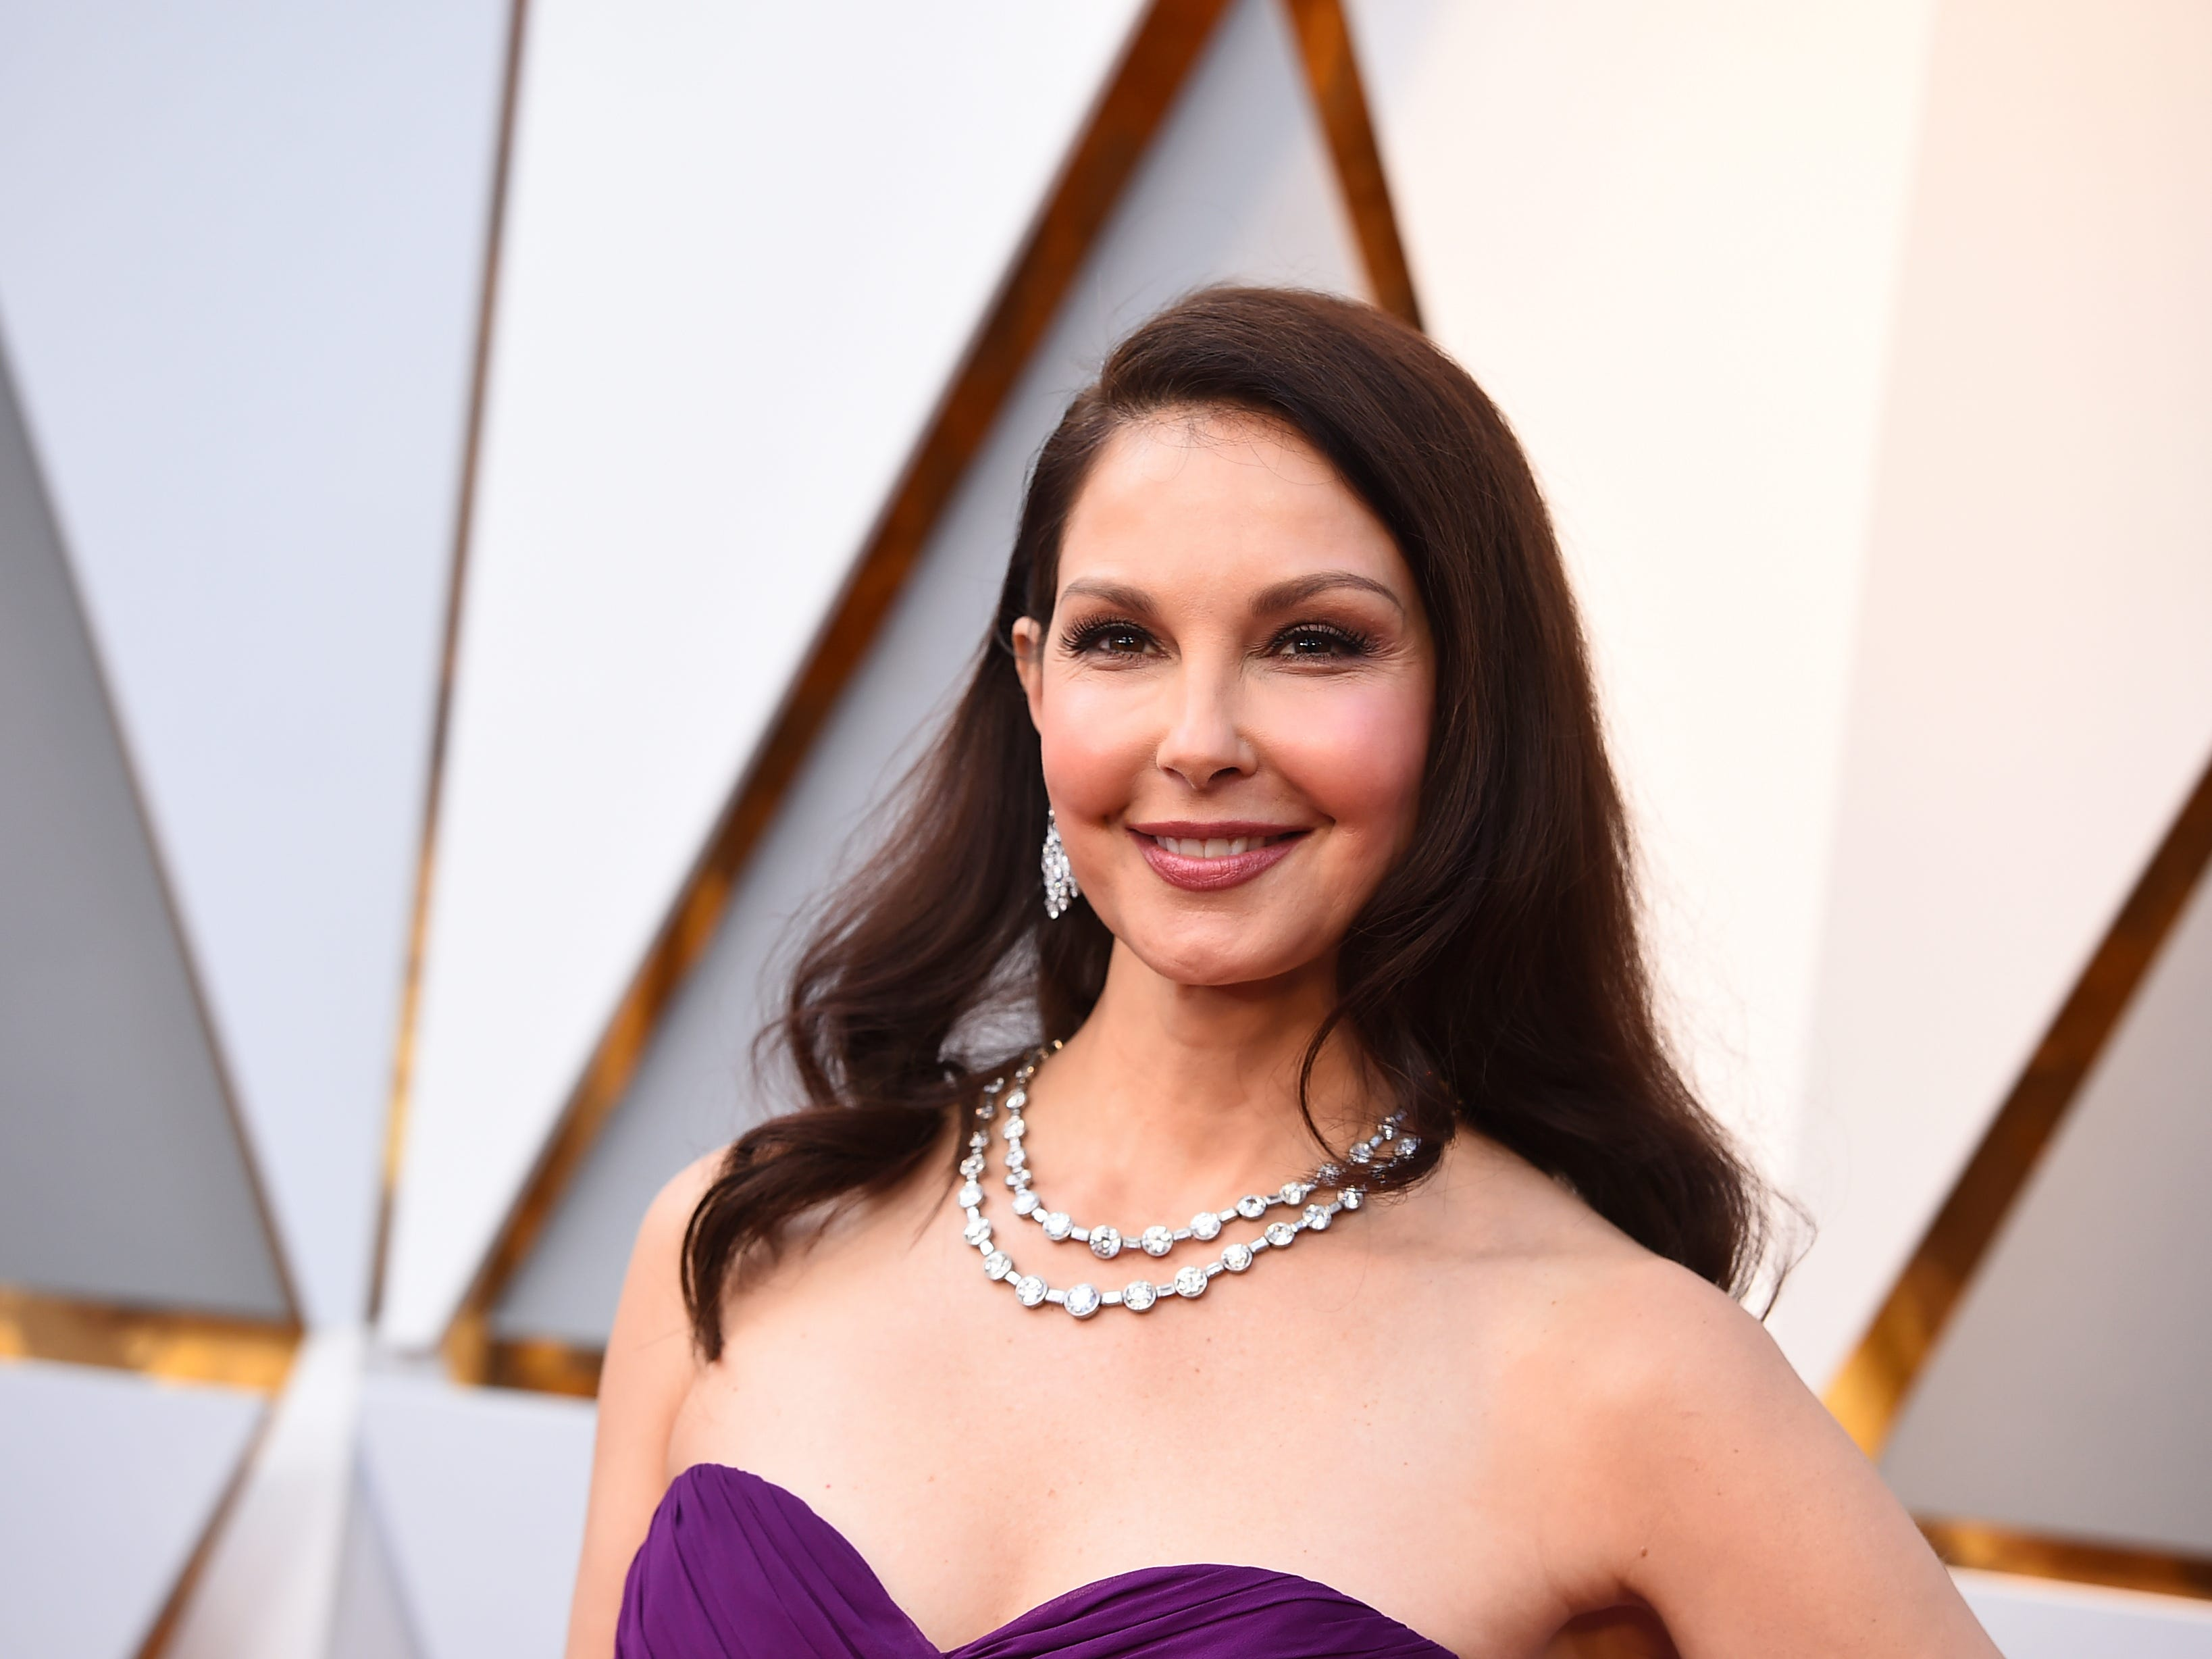 Ashley Judd arrives at the Oscars at the Dolby Theatre in Los Angeles.